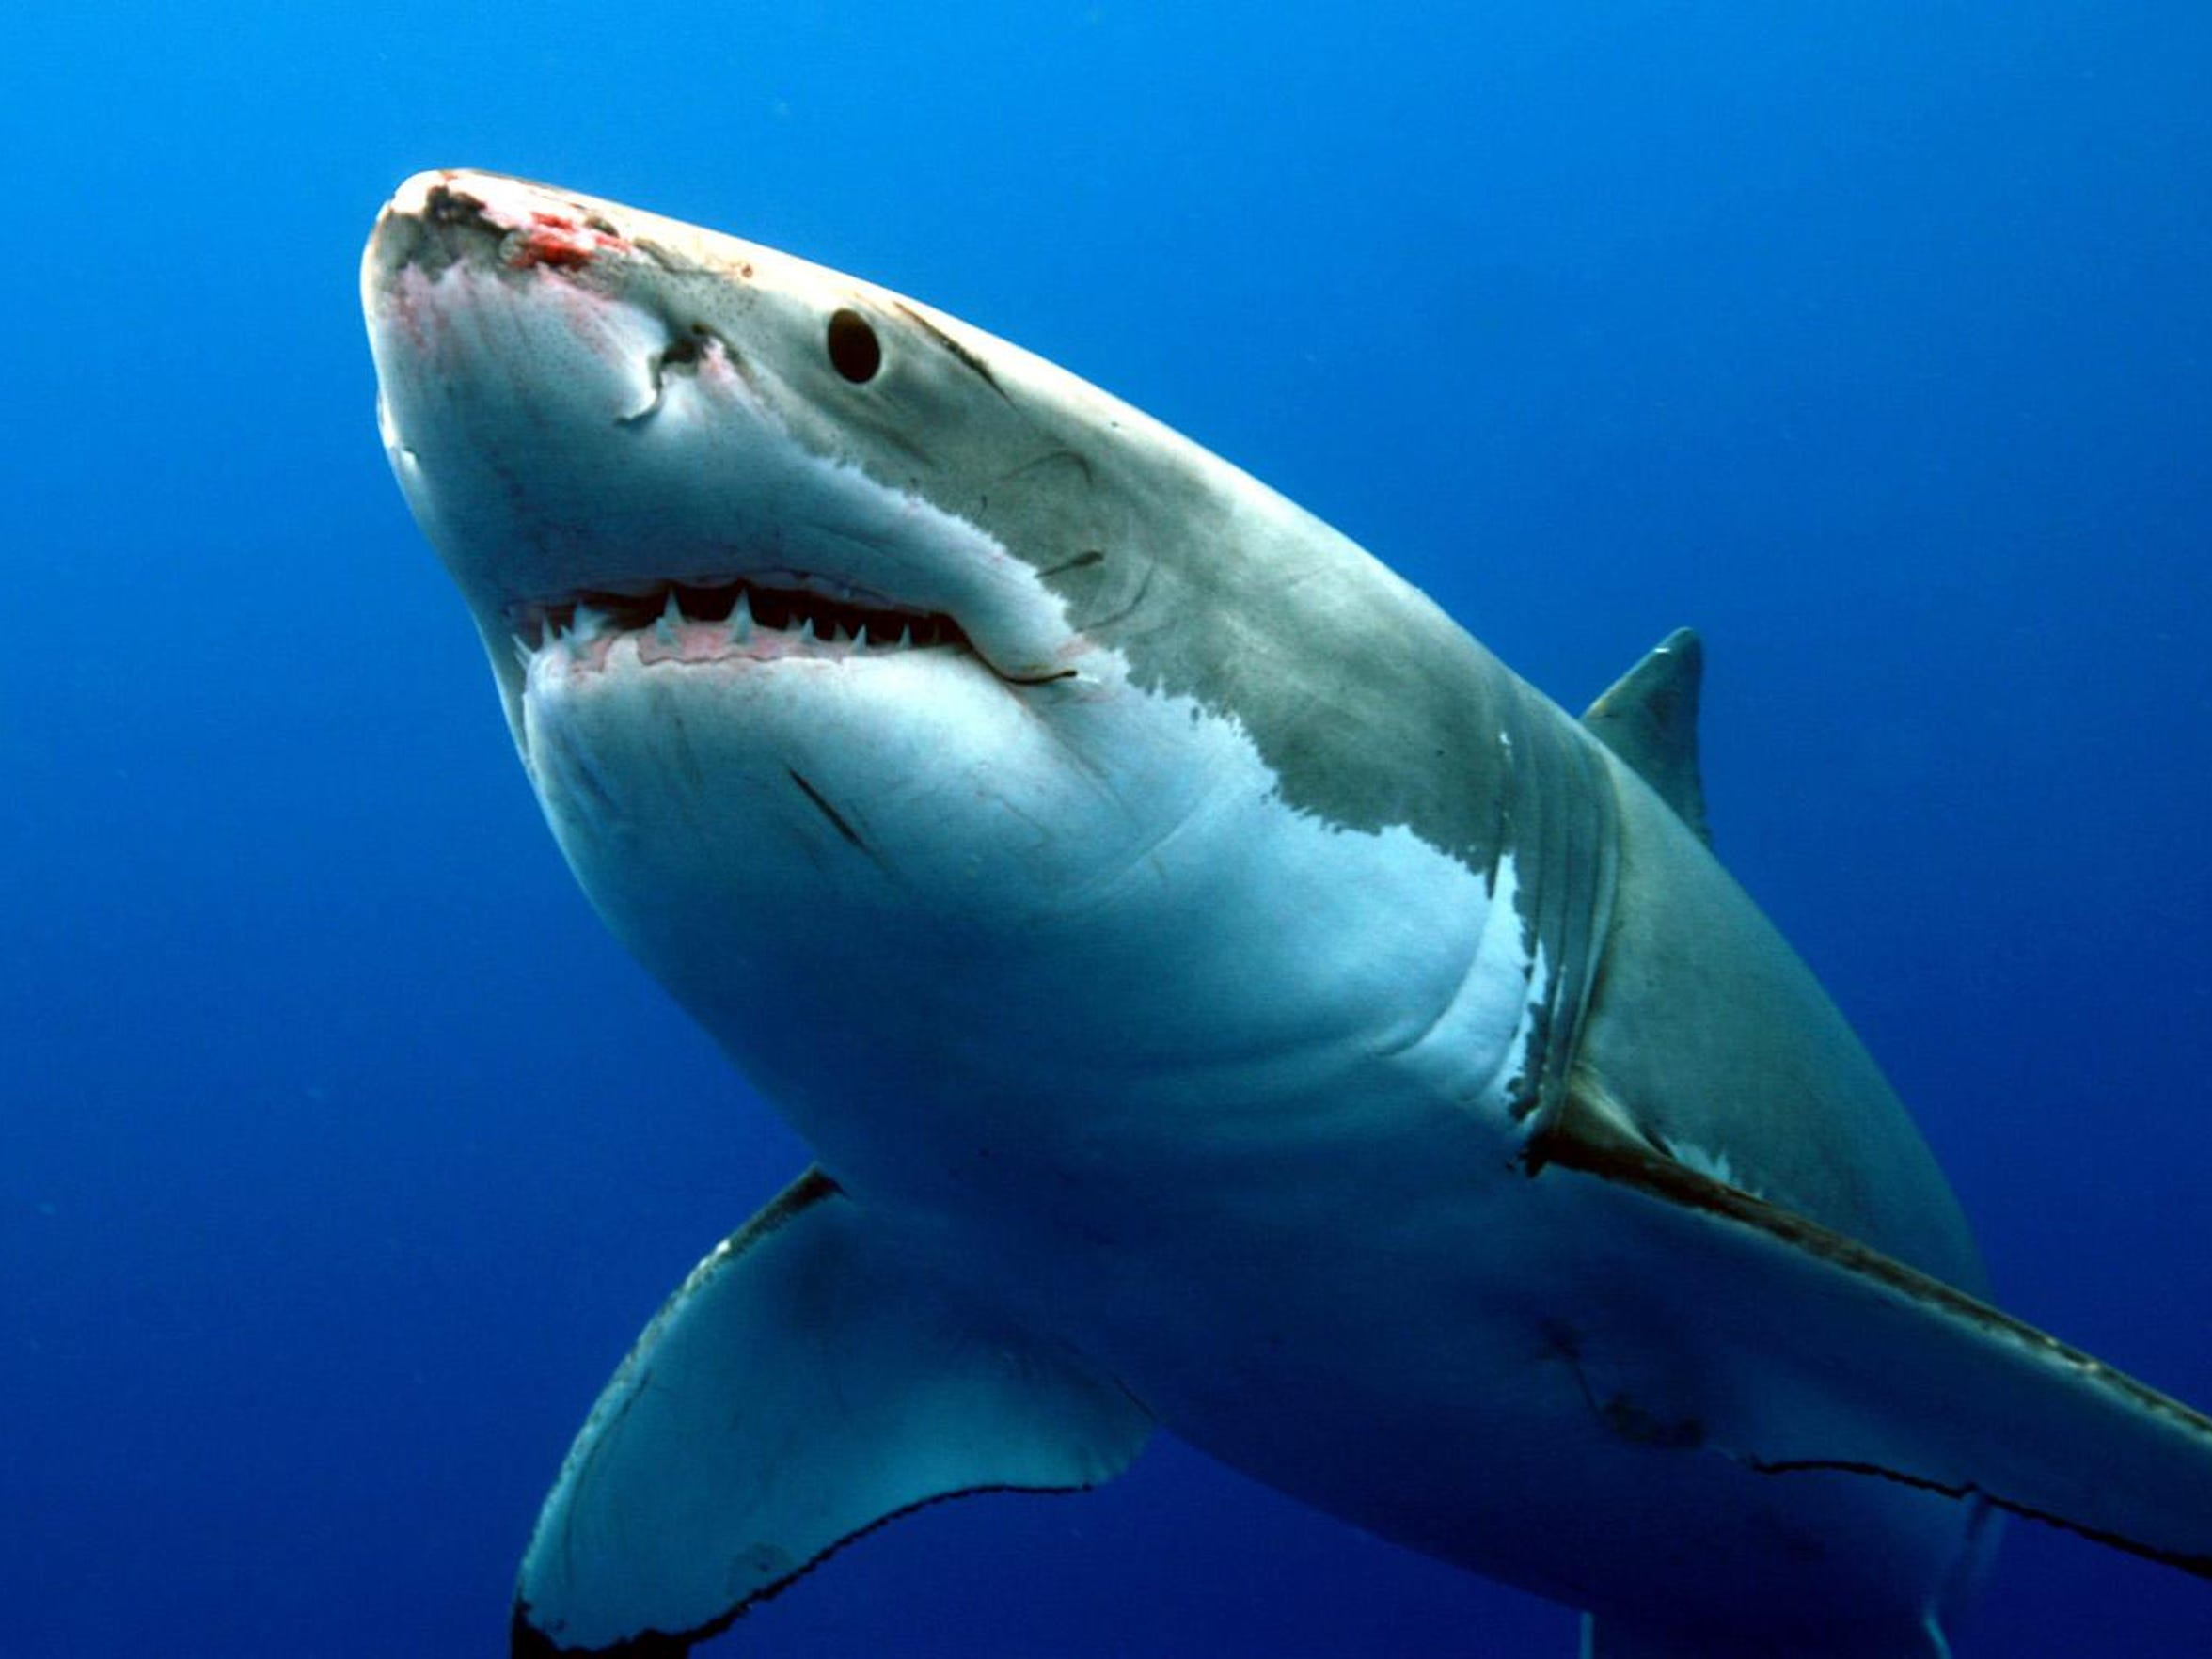 A great white shark eyes prey in the Pacific Ocean